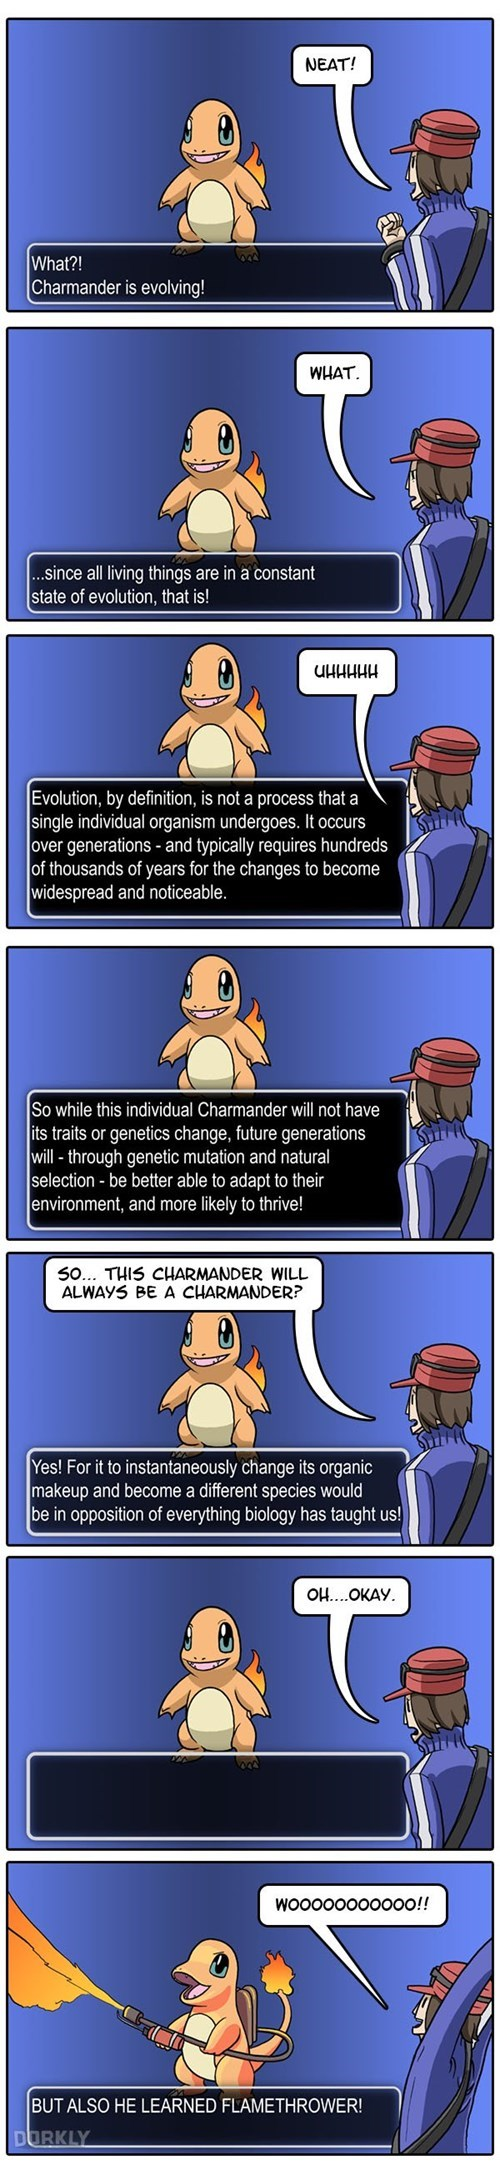 Pokémon,dorkly,evolution,charmander,web comics